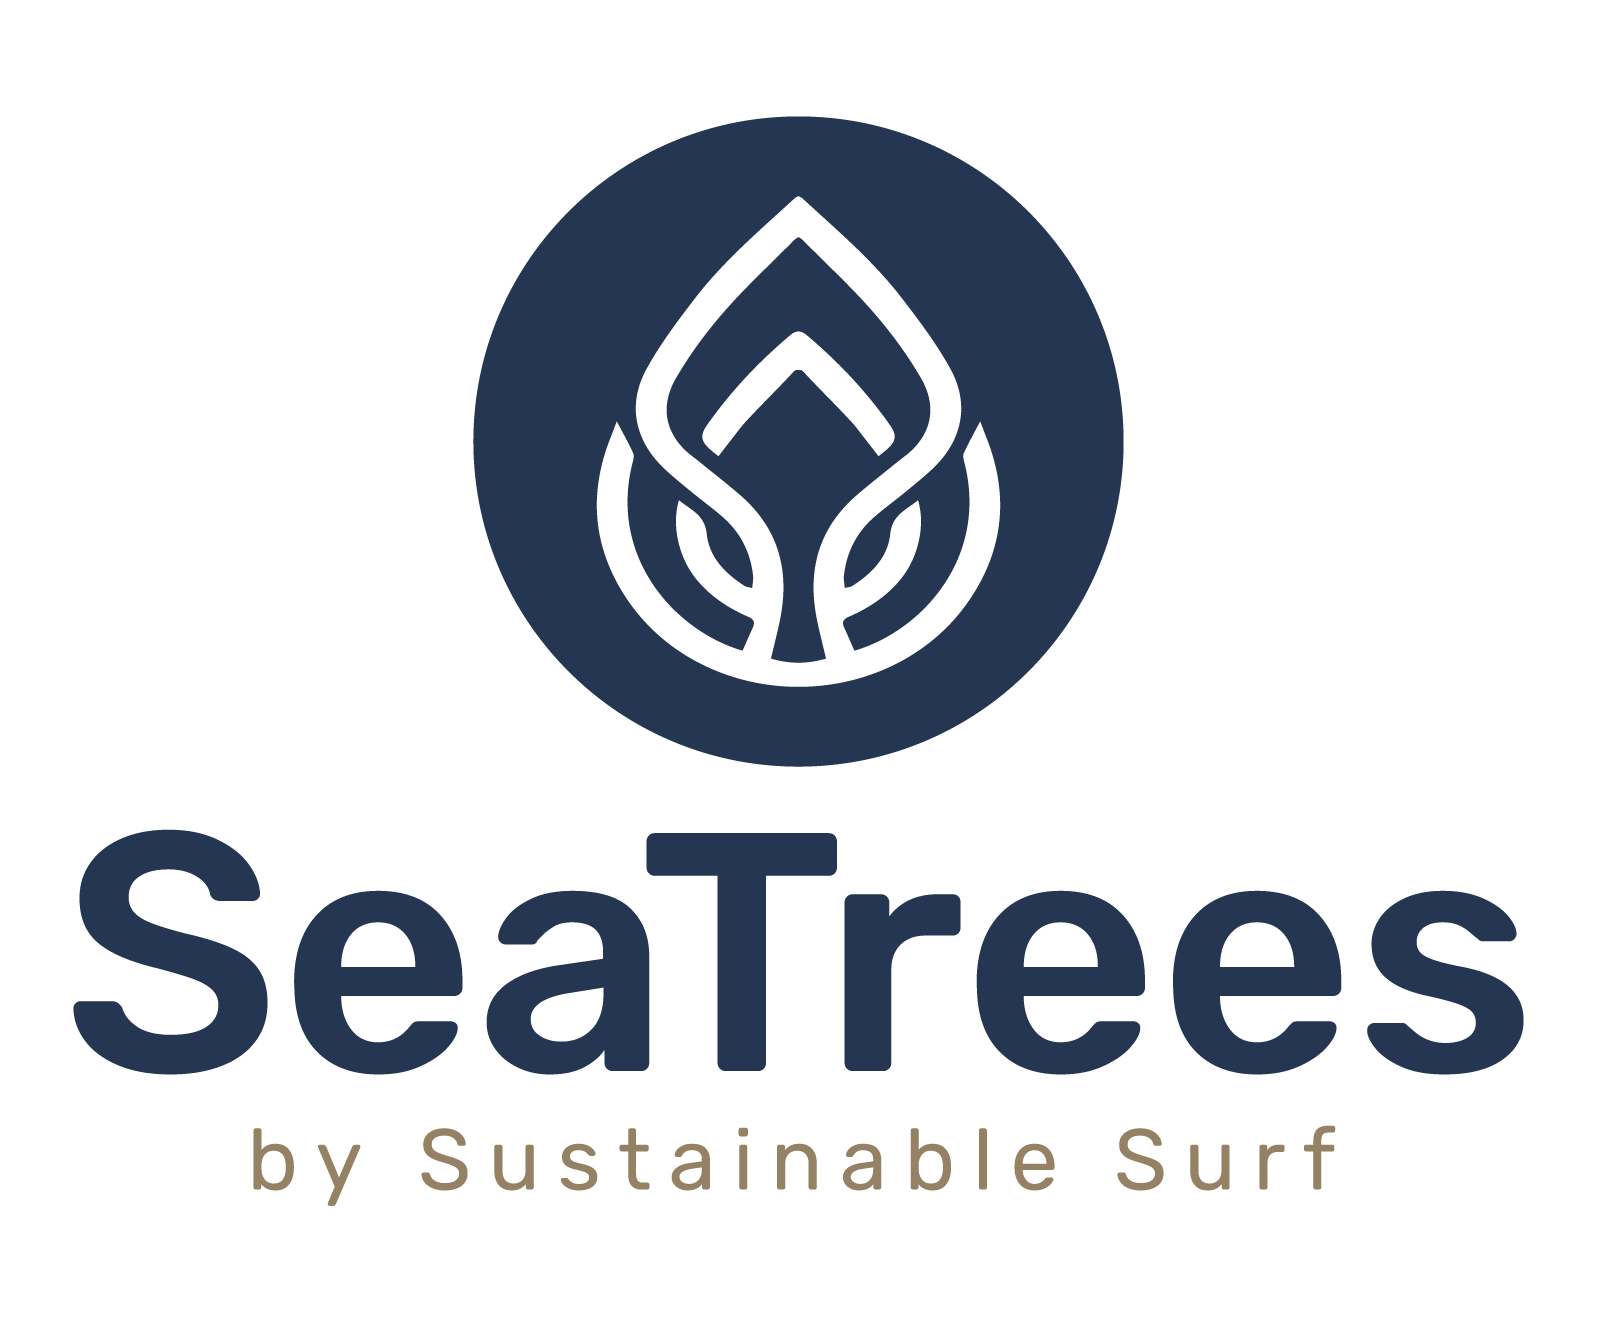 seatrees - Sustainability